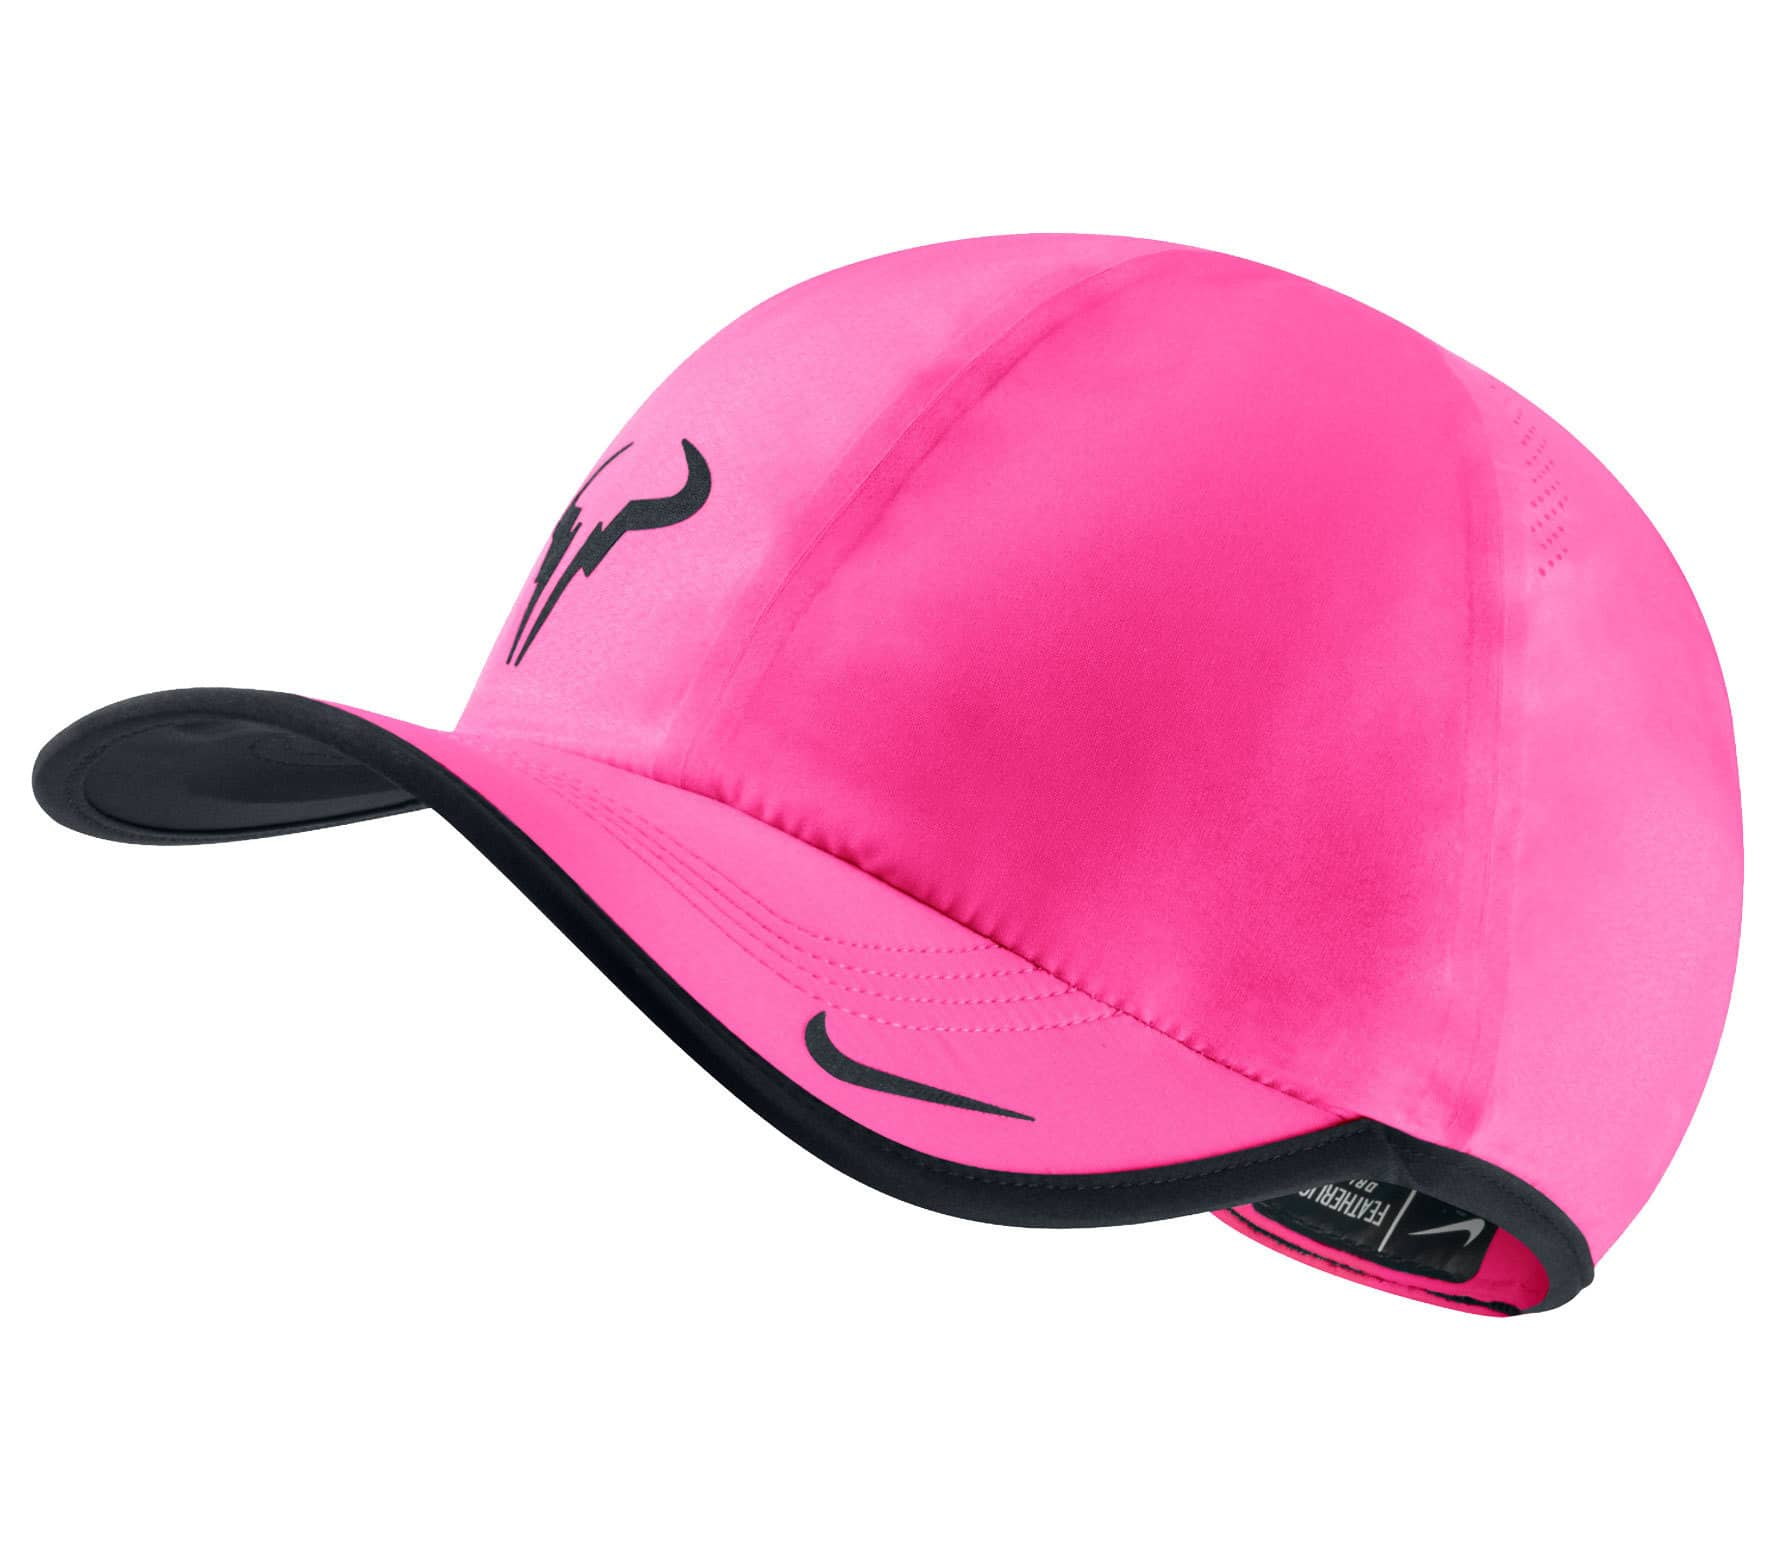 8efd180cf1fed Nike - Rafael Nadal Bull Featherlight Tennis cap (pink) - buy it at ...